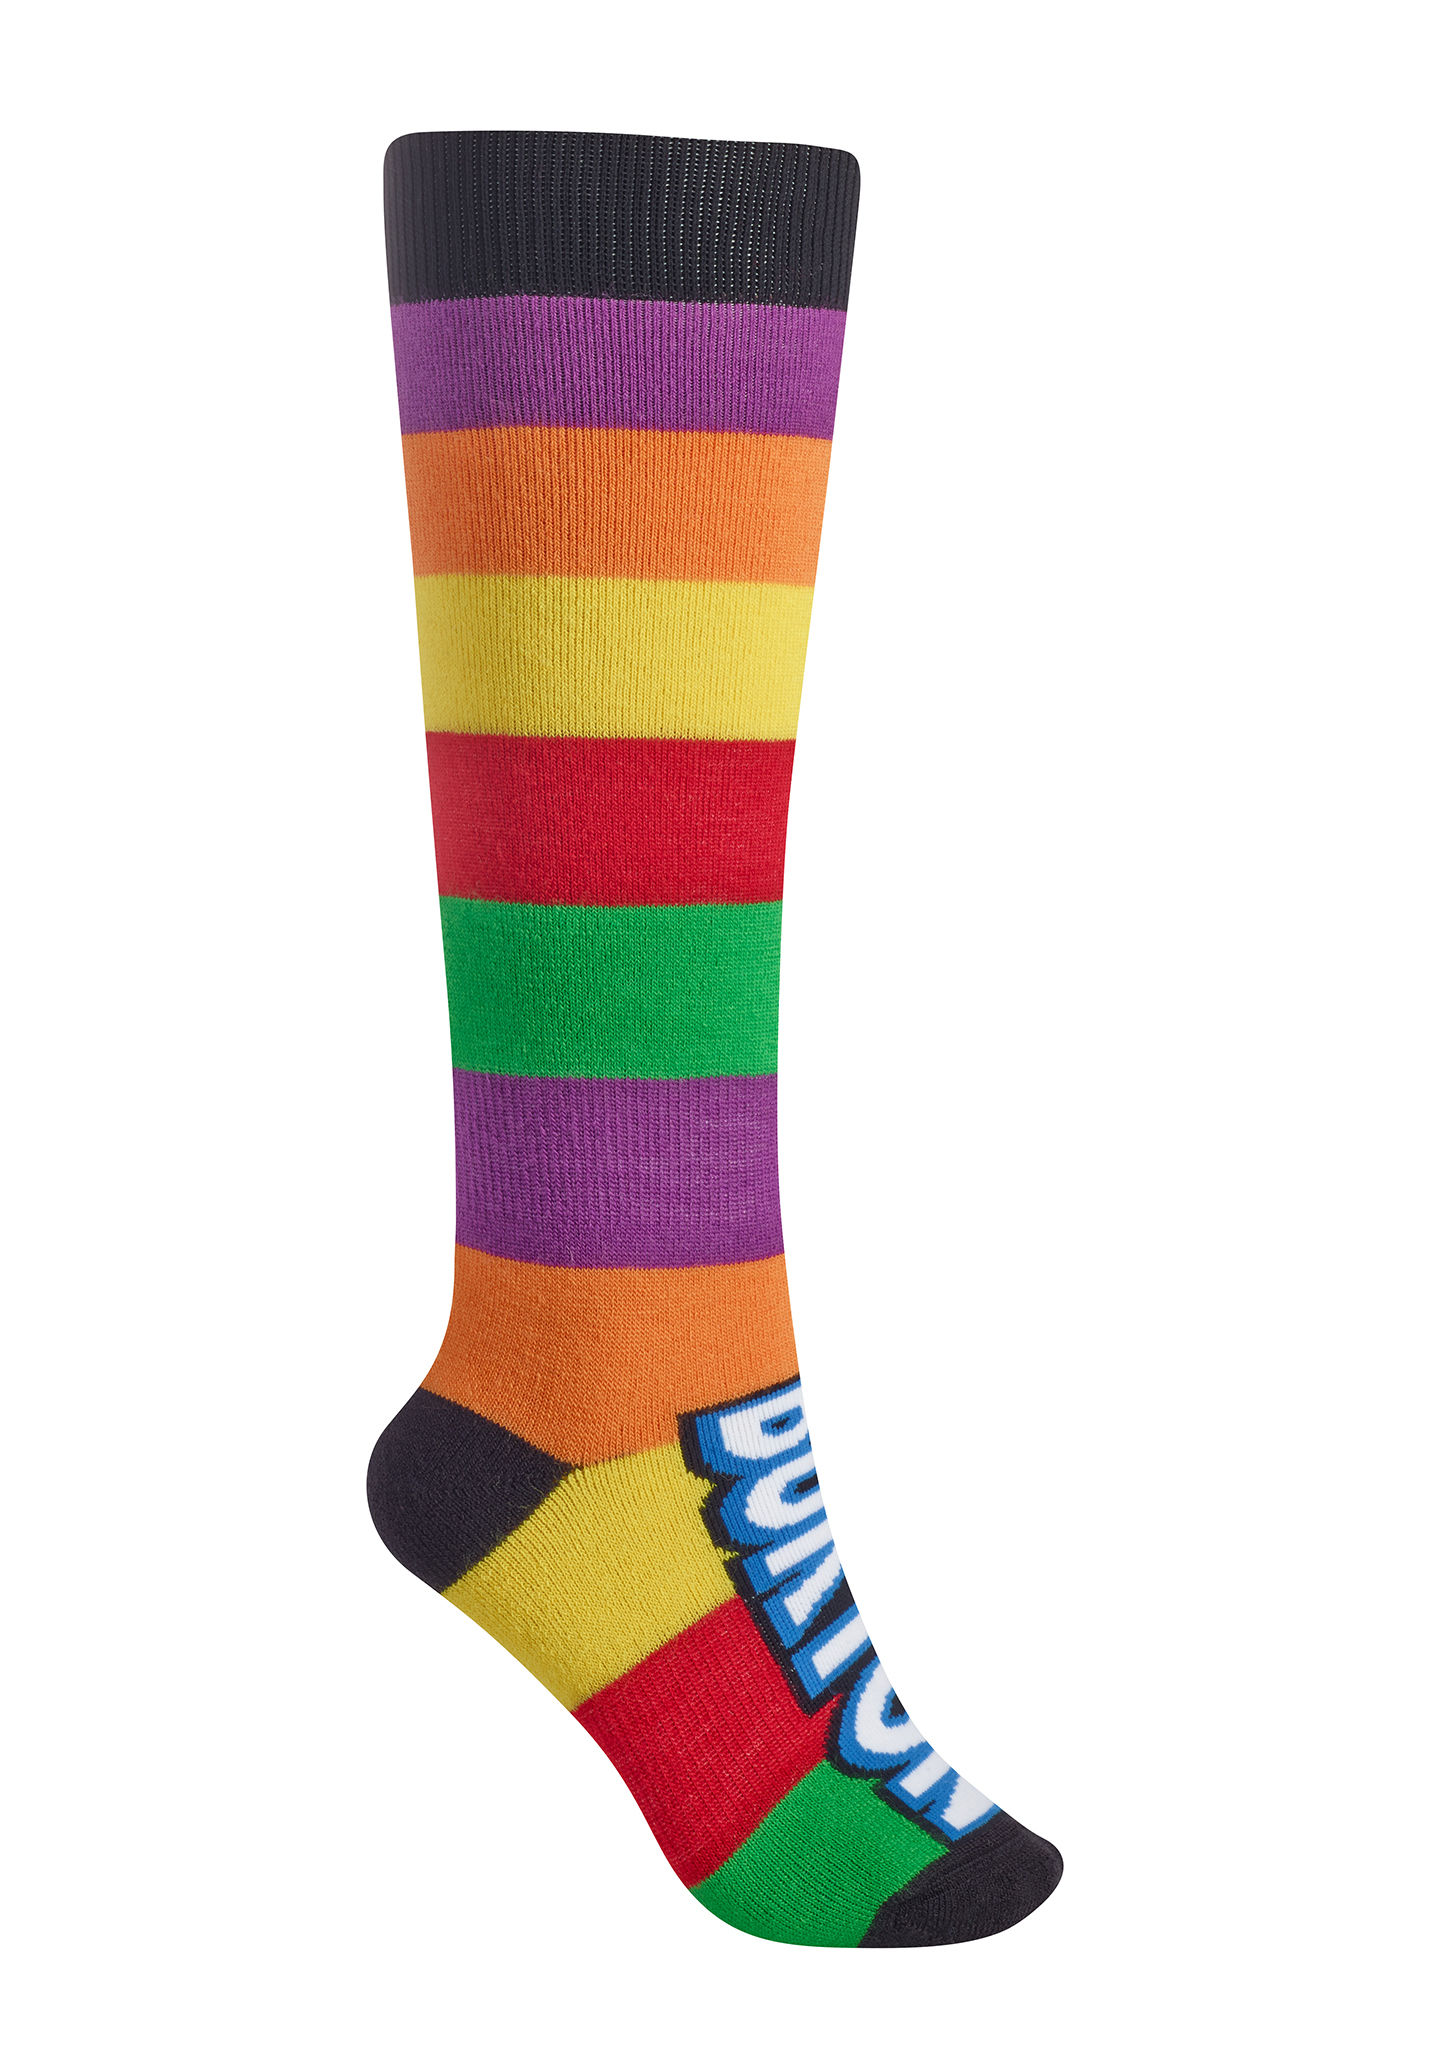 - Burton Party - Snowboard Socks For Women - Multicolor - Planet Sports